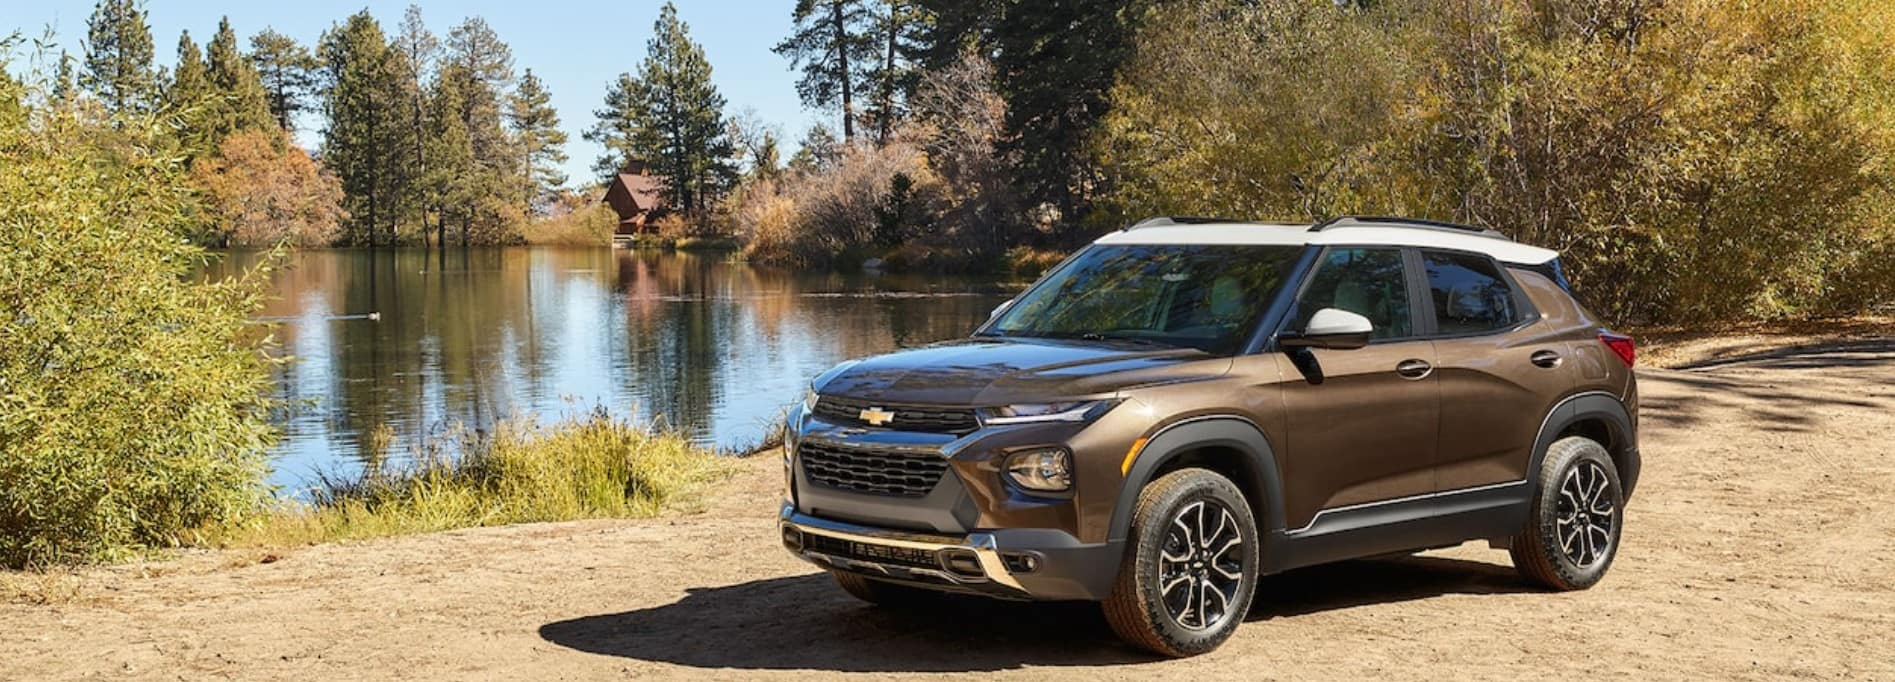 2021 Chevrolet Trailblazer near St. Louis